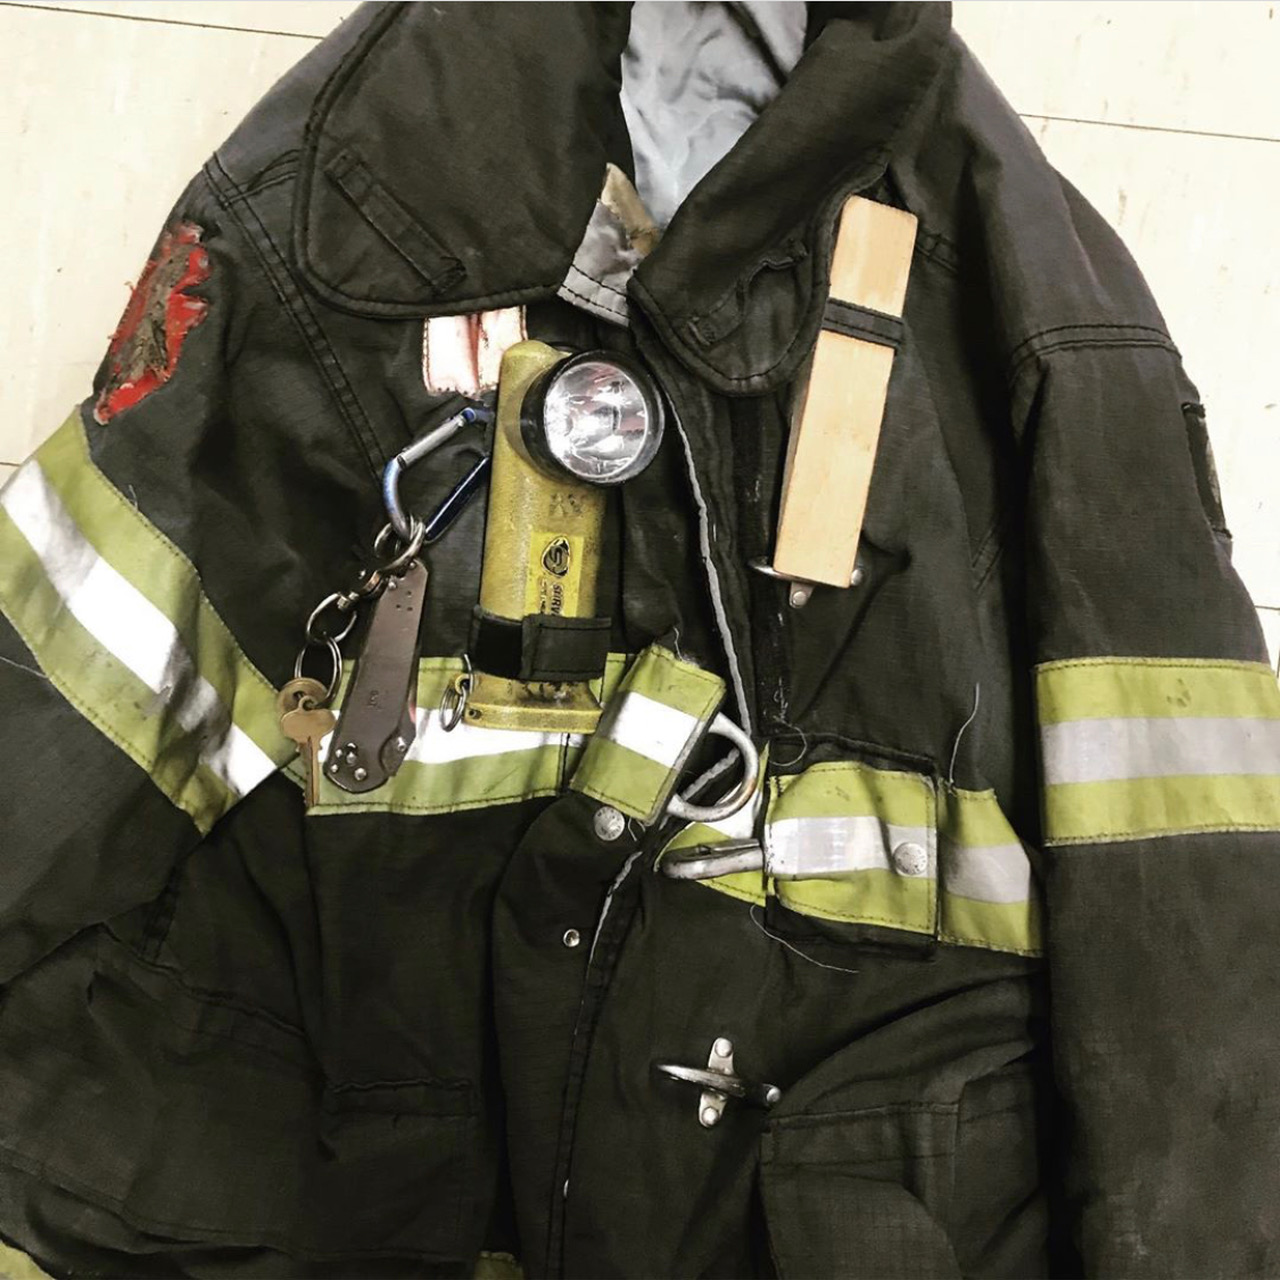 tools in firefighter pockets